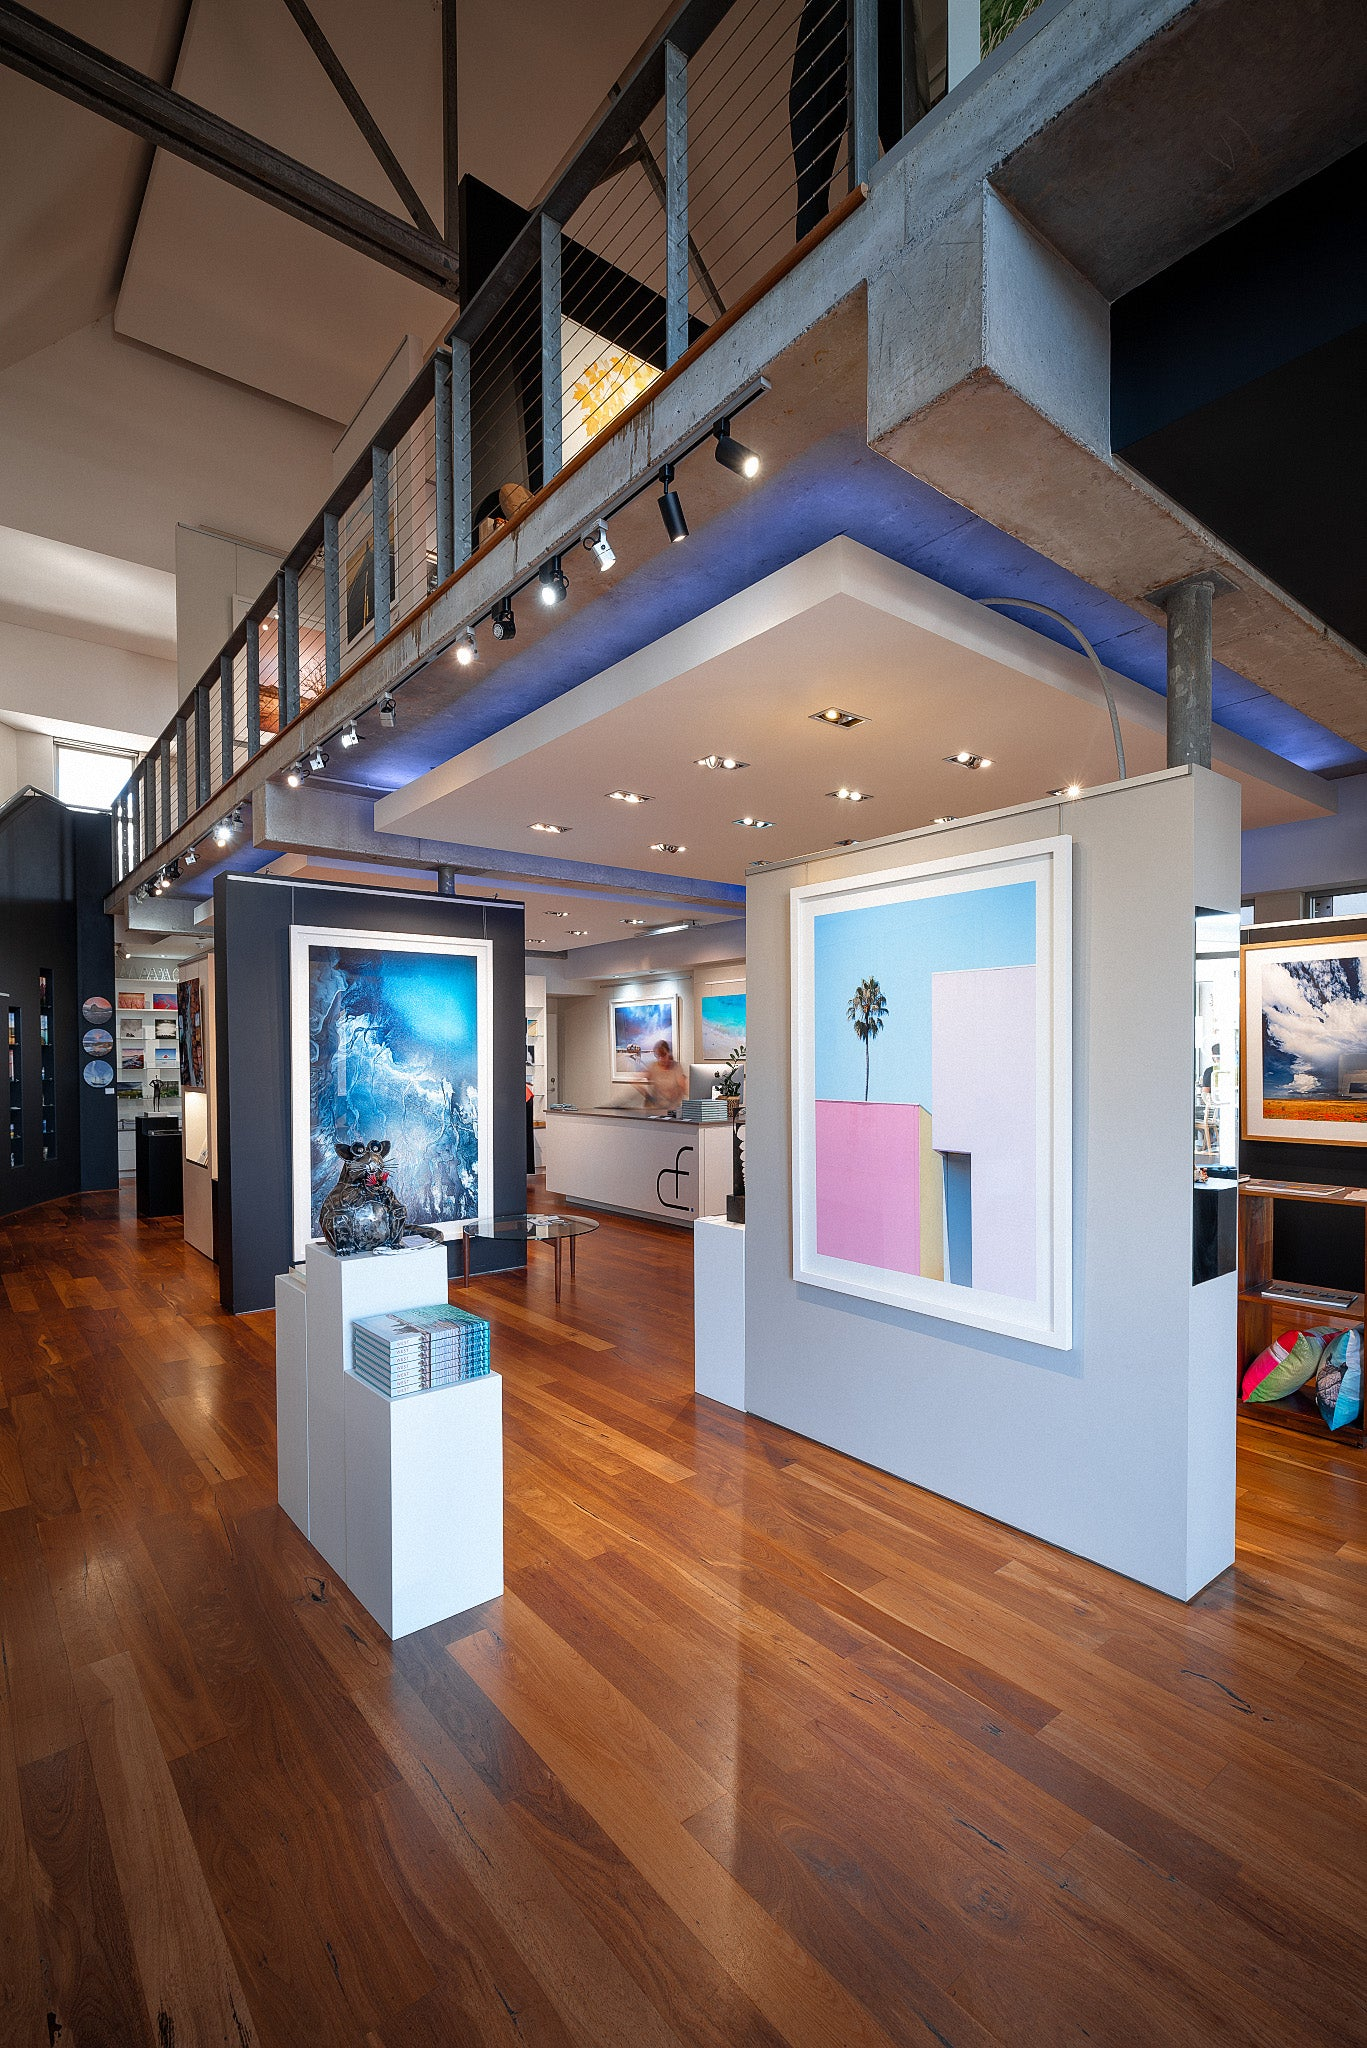 Interior view of photographic gallery in Dunsborough, Western Australia, by renowned photographer, Christian Fletcher